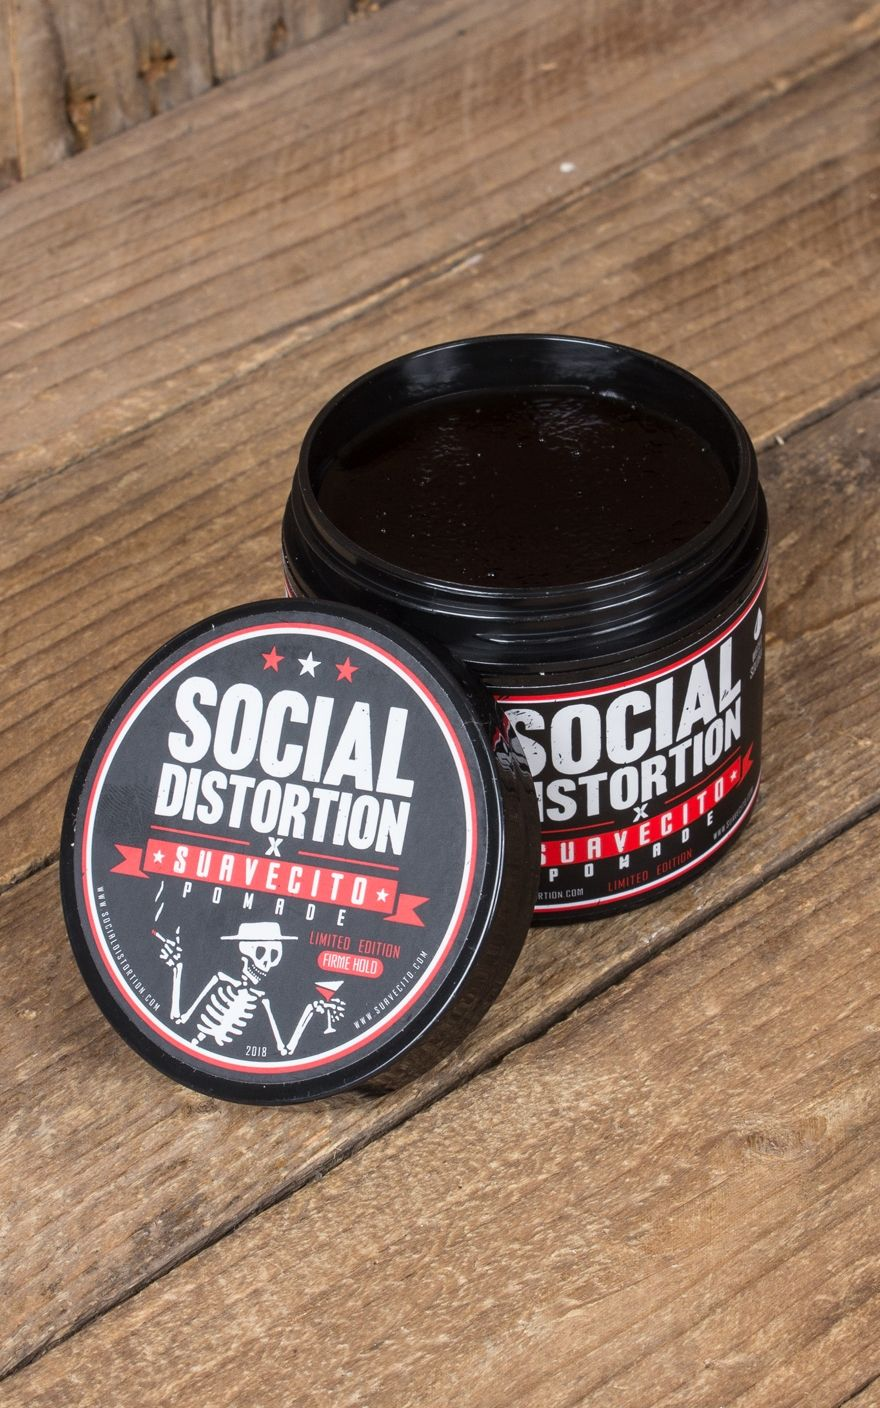 Suavecito Pomade Social Distortion Edition Firme Hold Grease Original Strong Made In Usa